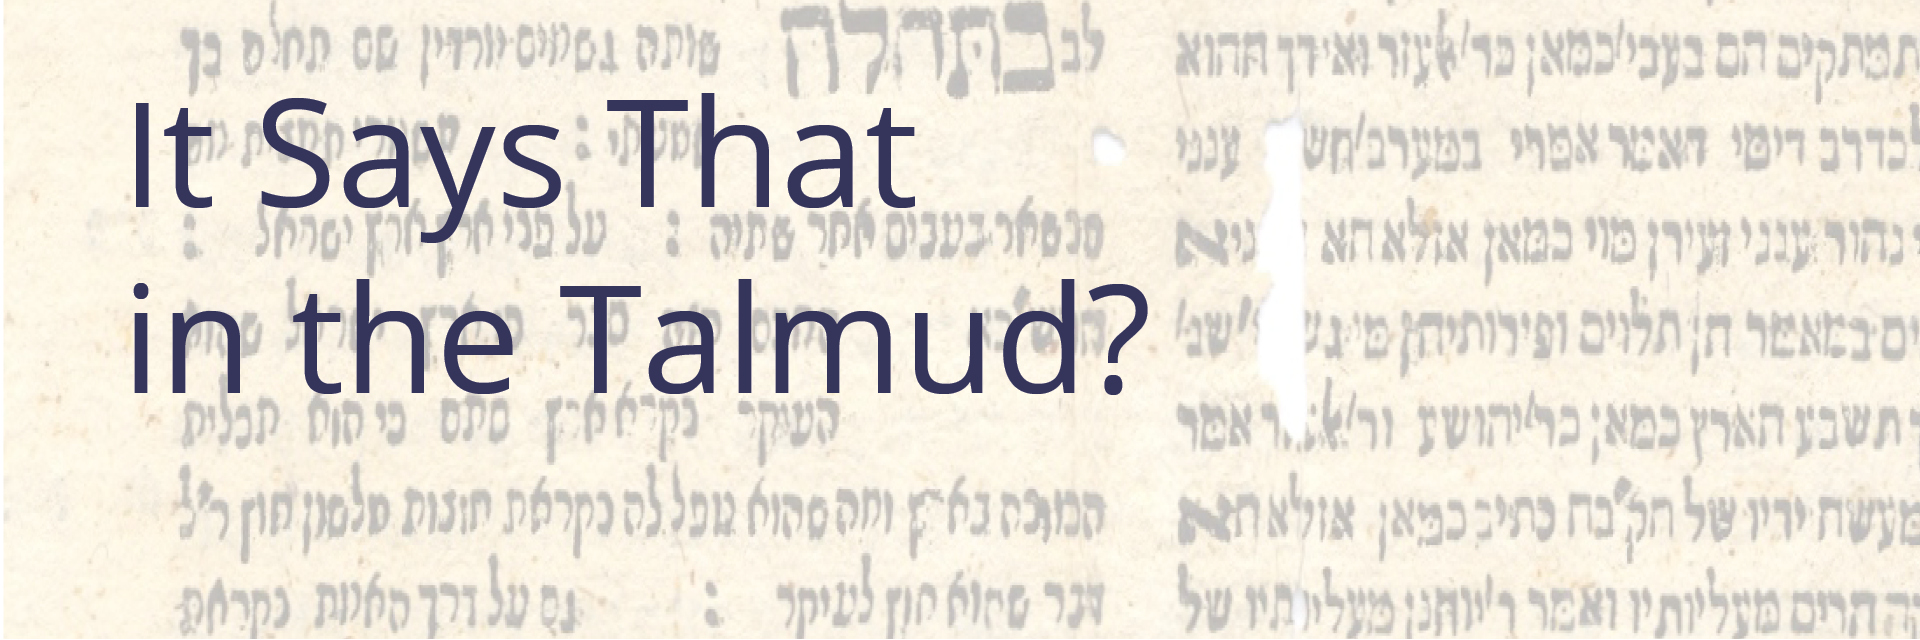 "<a href=""https://www.congkti.org/event/it-says-that-in-the-talmud.html#""